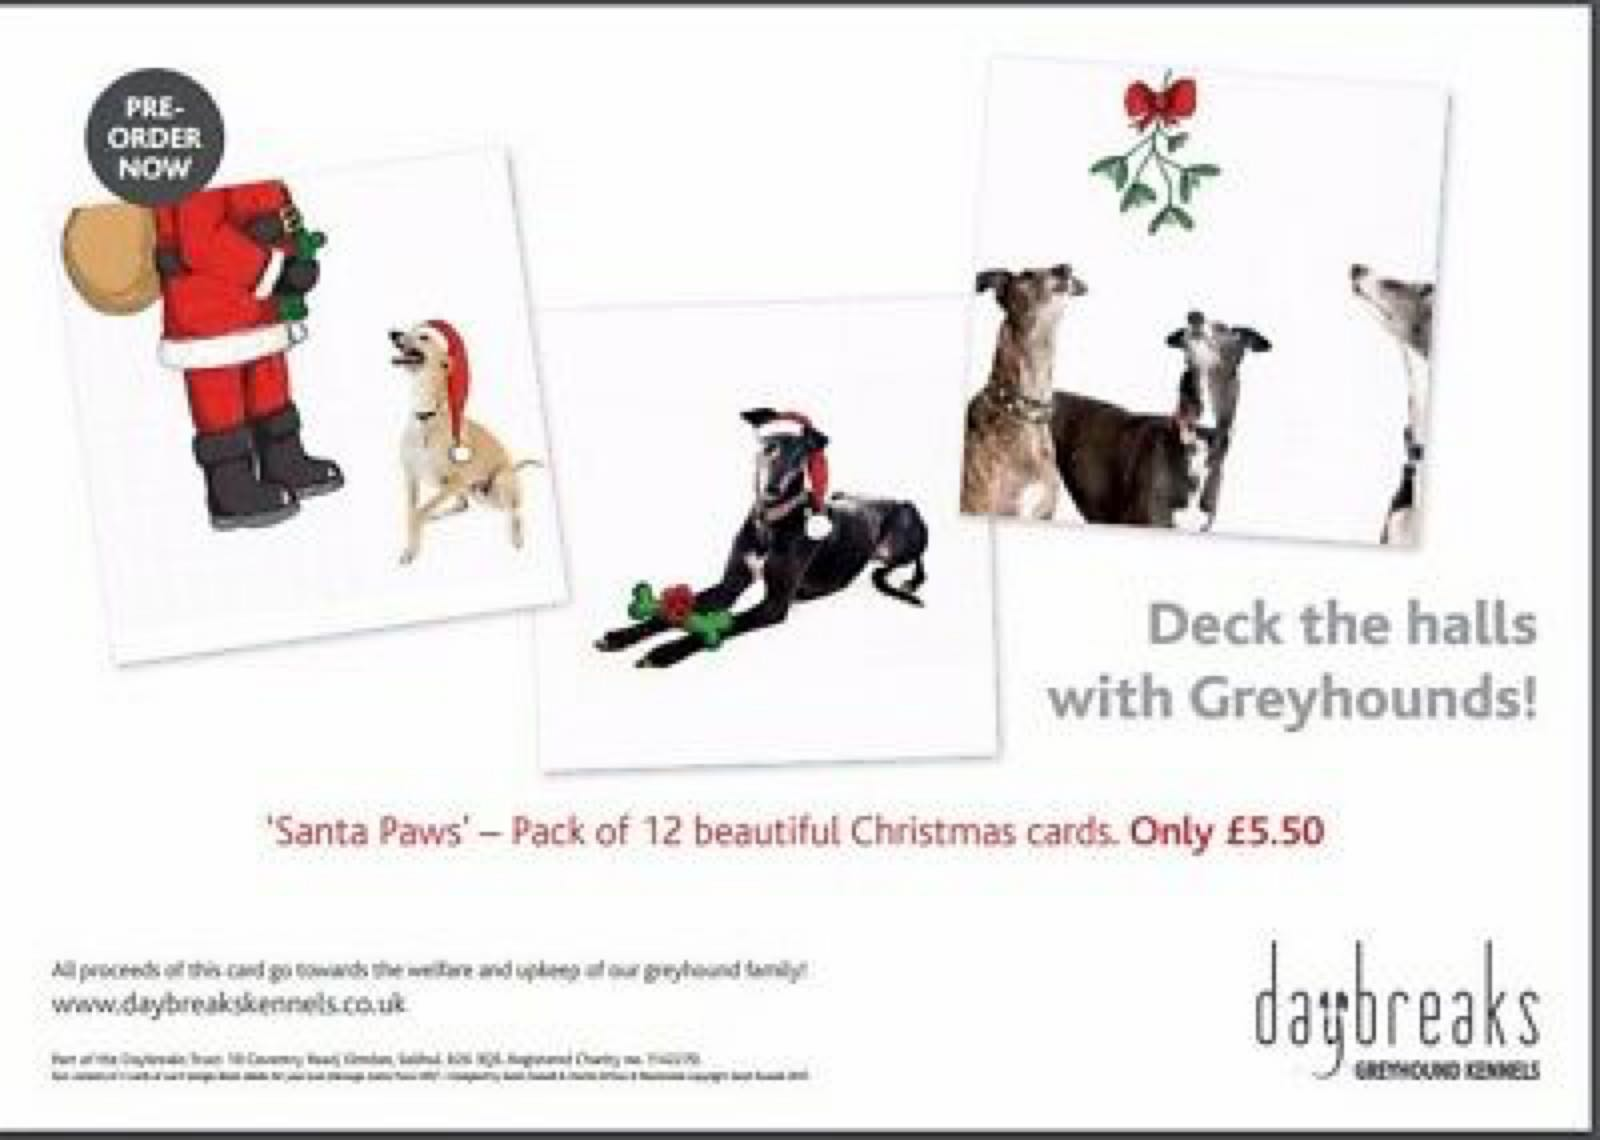 (A) Daybreaks Christmas cards Santa Paws